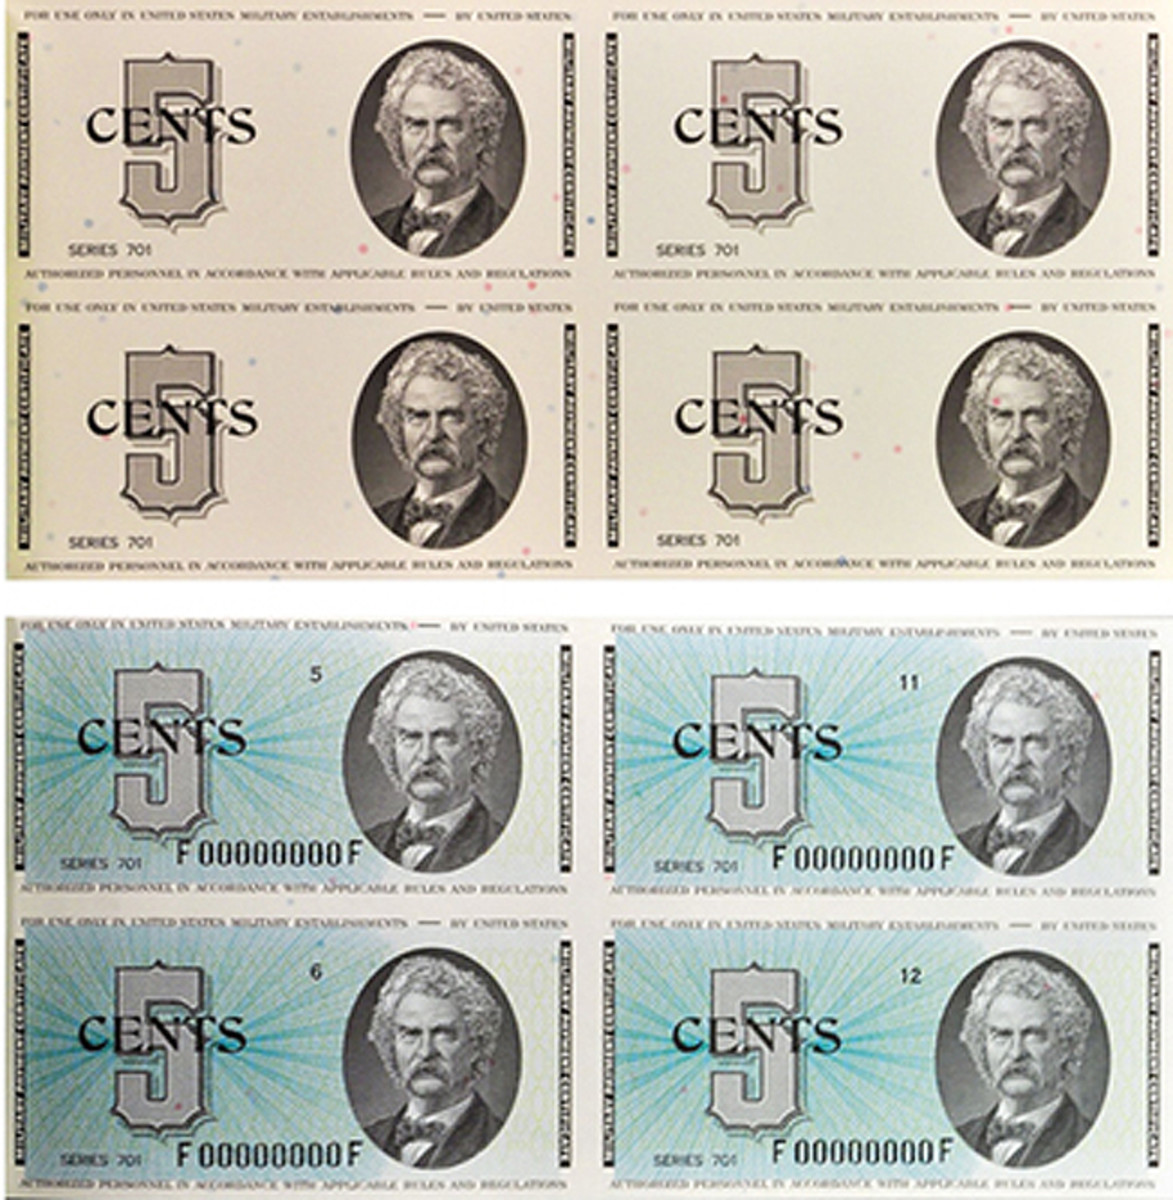 The collection includes progressive proofs from different stages of the printing process, as with these Series 701 5-cent military payment certificates depicting Mark Twain. Image courtesy of Stack's Bowers Galleries.